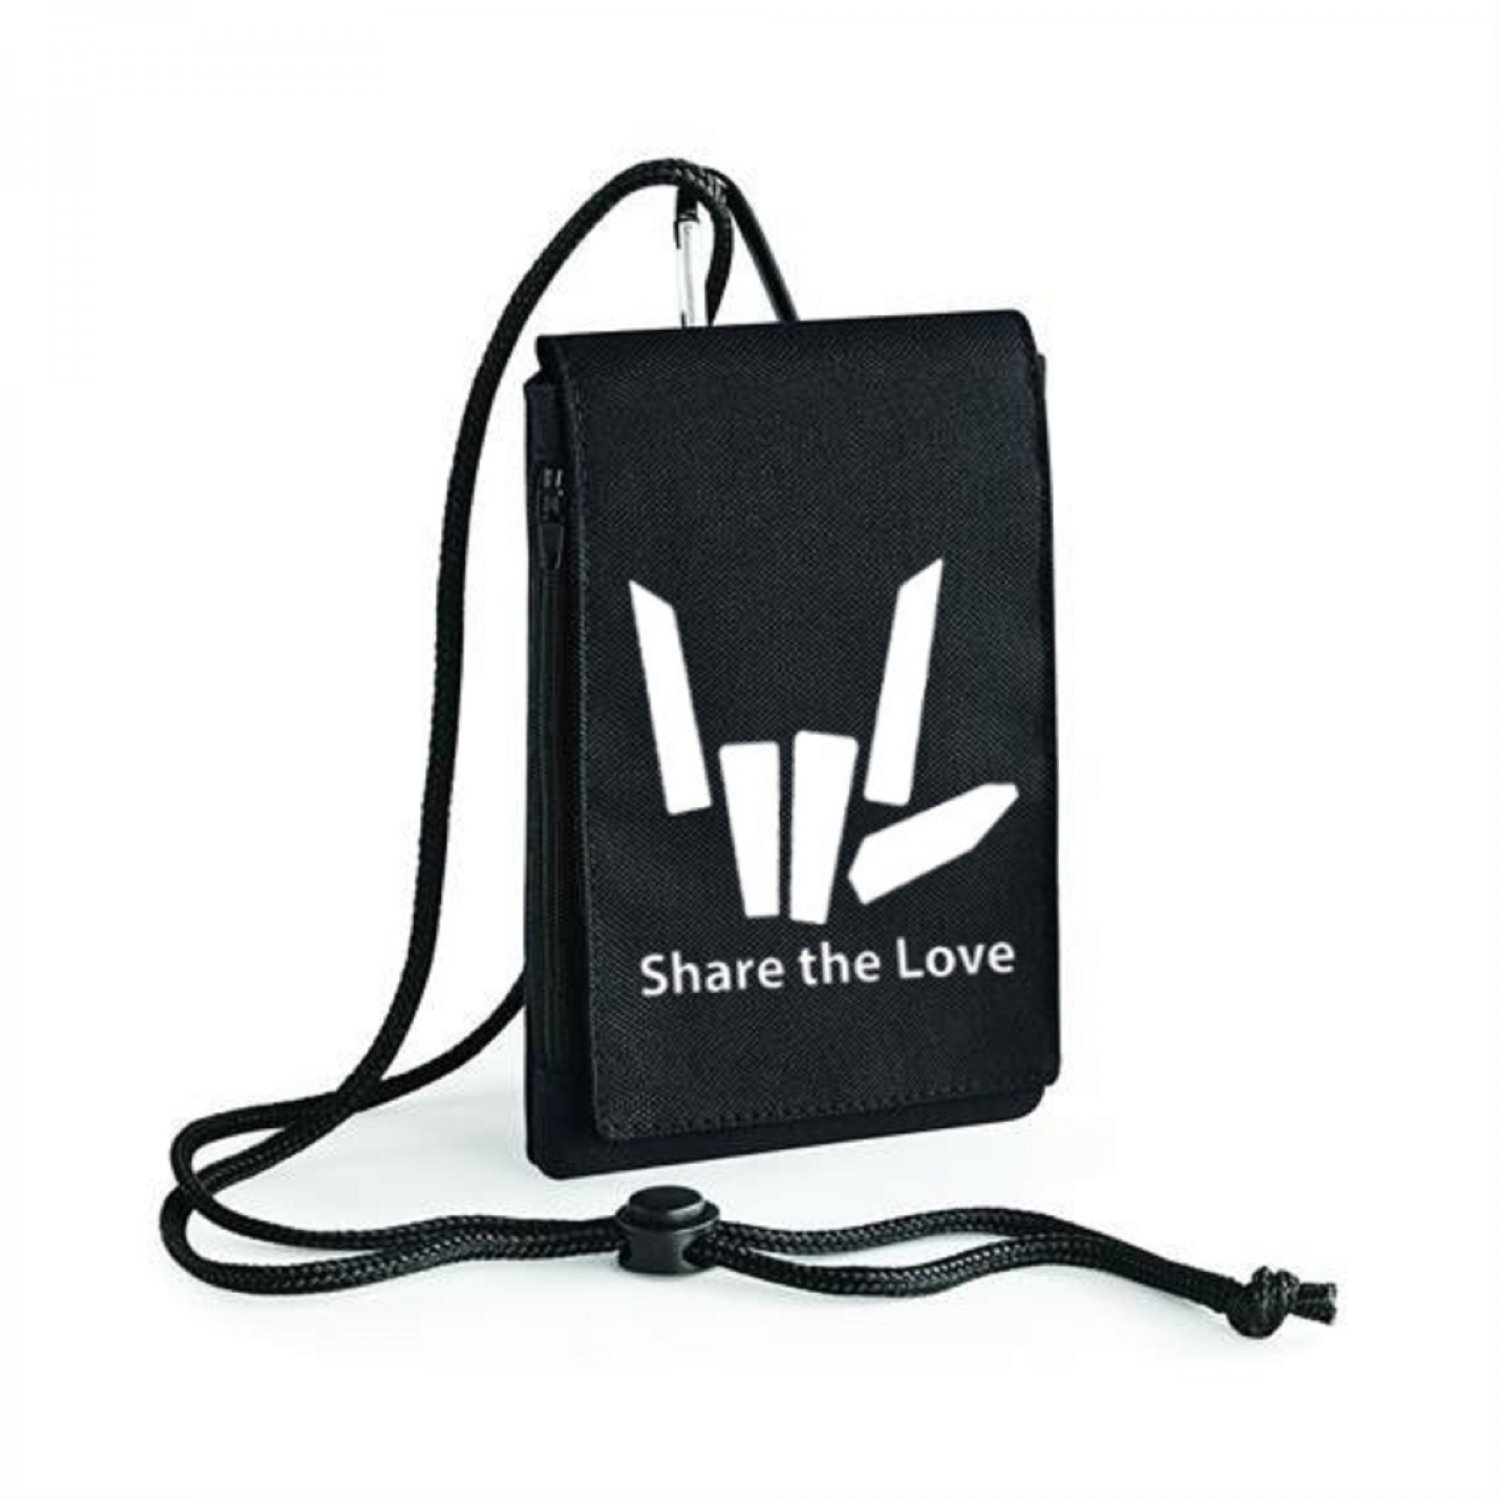 Share The Love Logo 2 Inspired Bagbase Phone Pouch